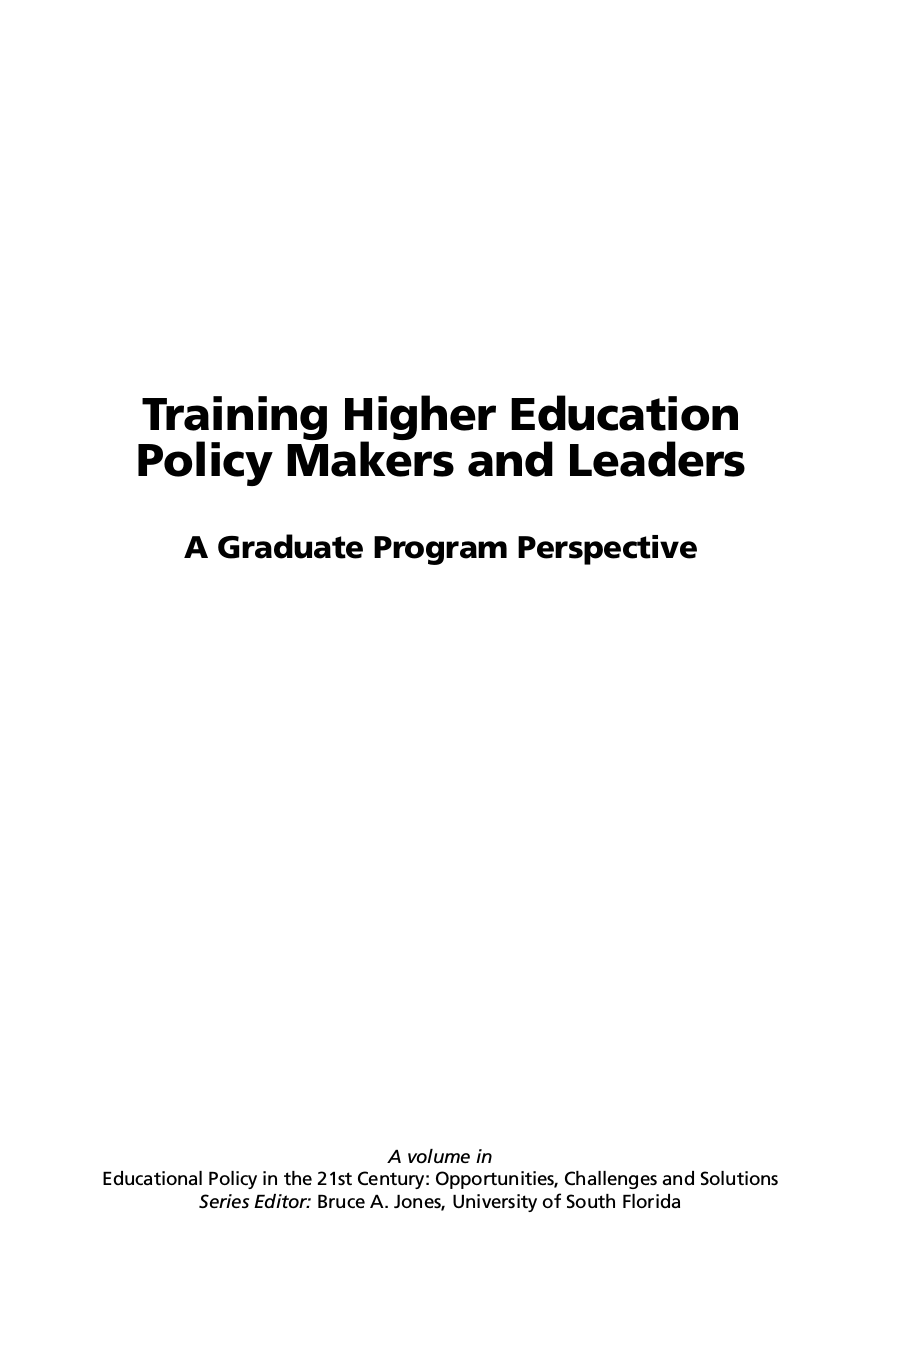 Training Higher Education Policy Makers and Leaders